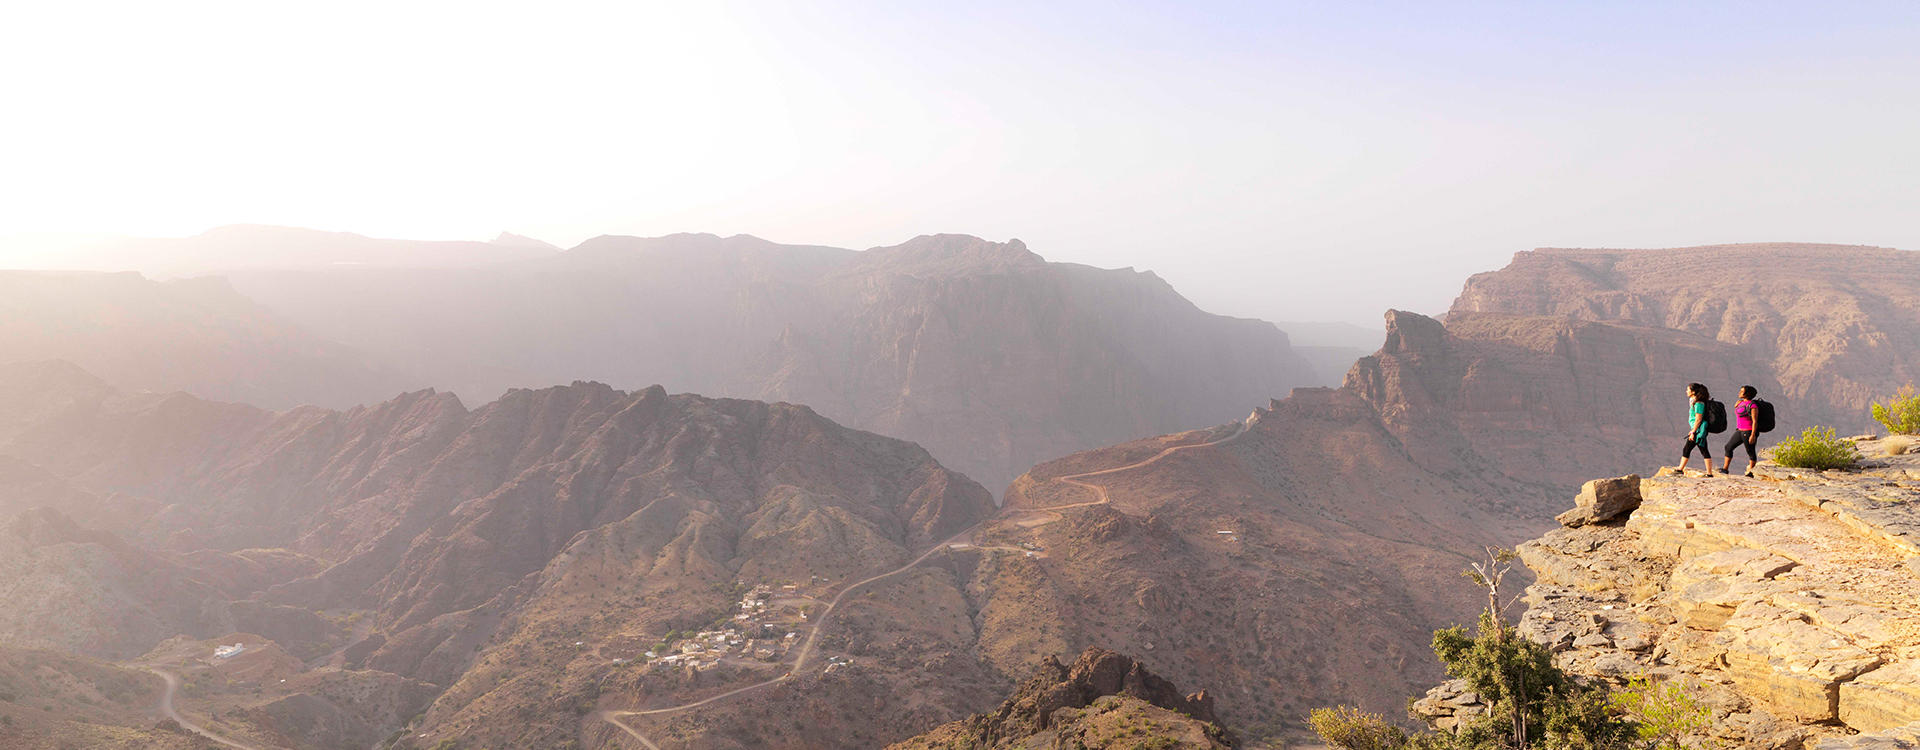 AN-Jabal-Al-Akhdar_Journey-to-Cold-Valley